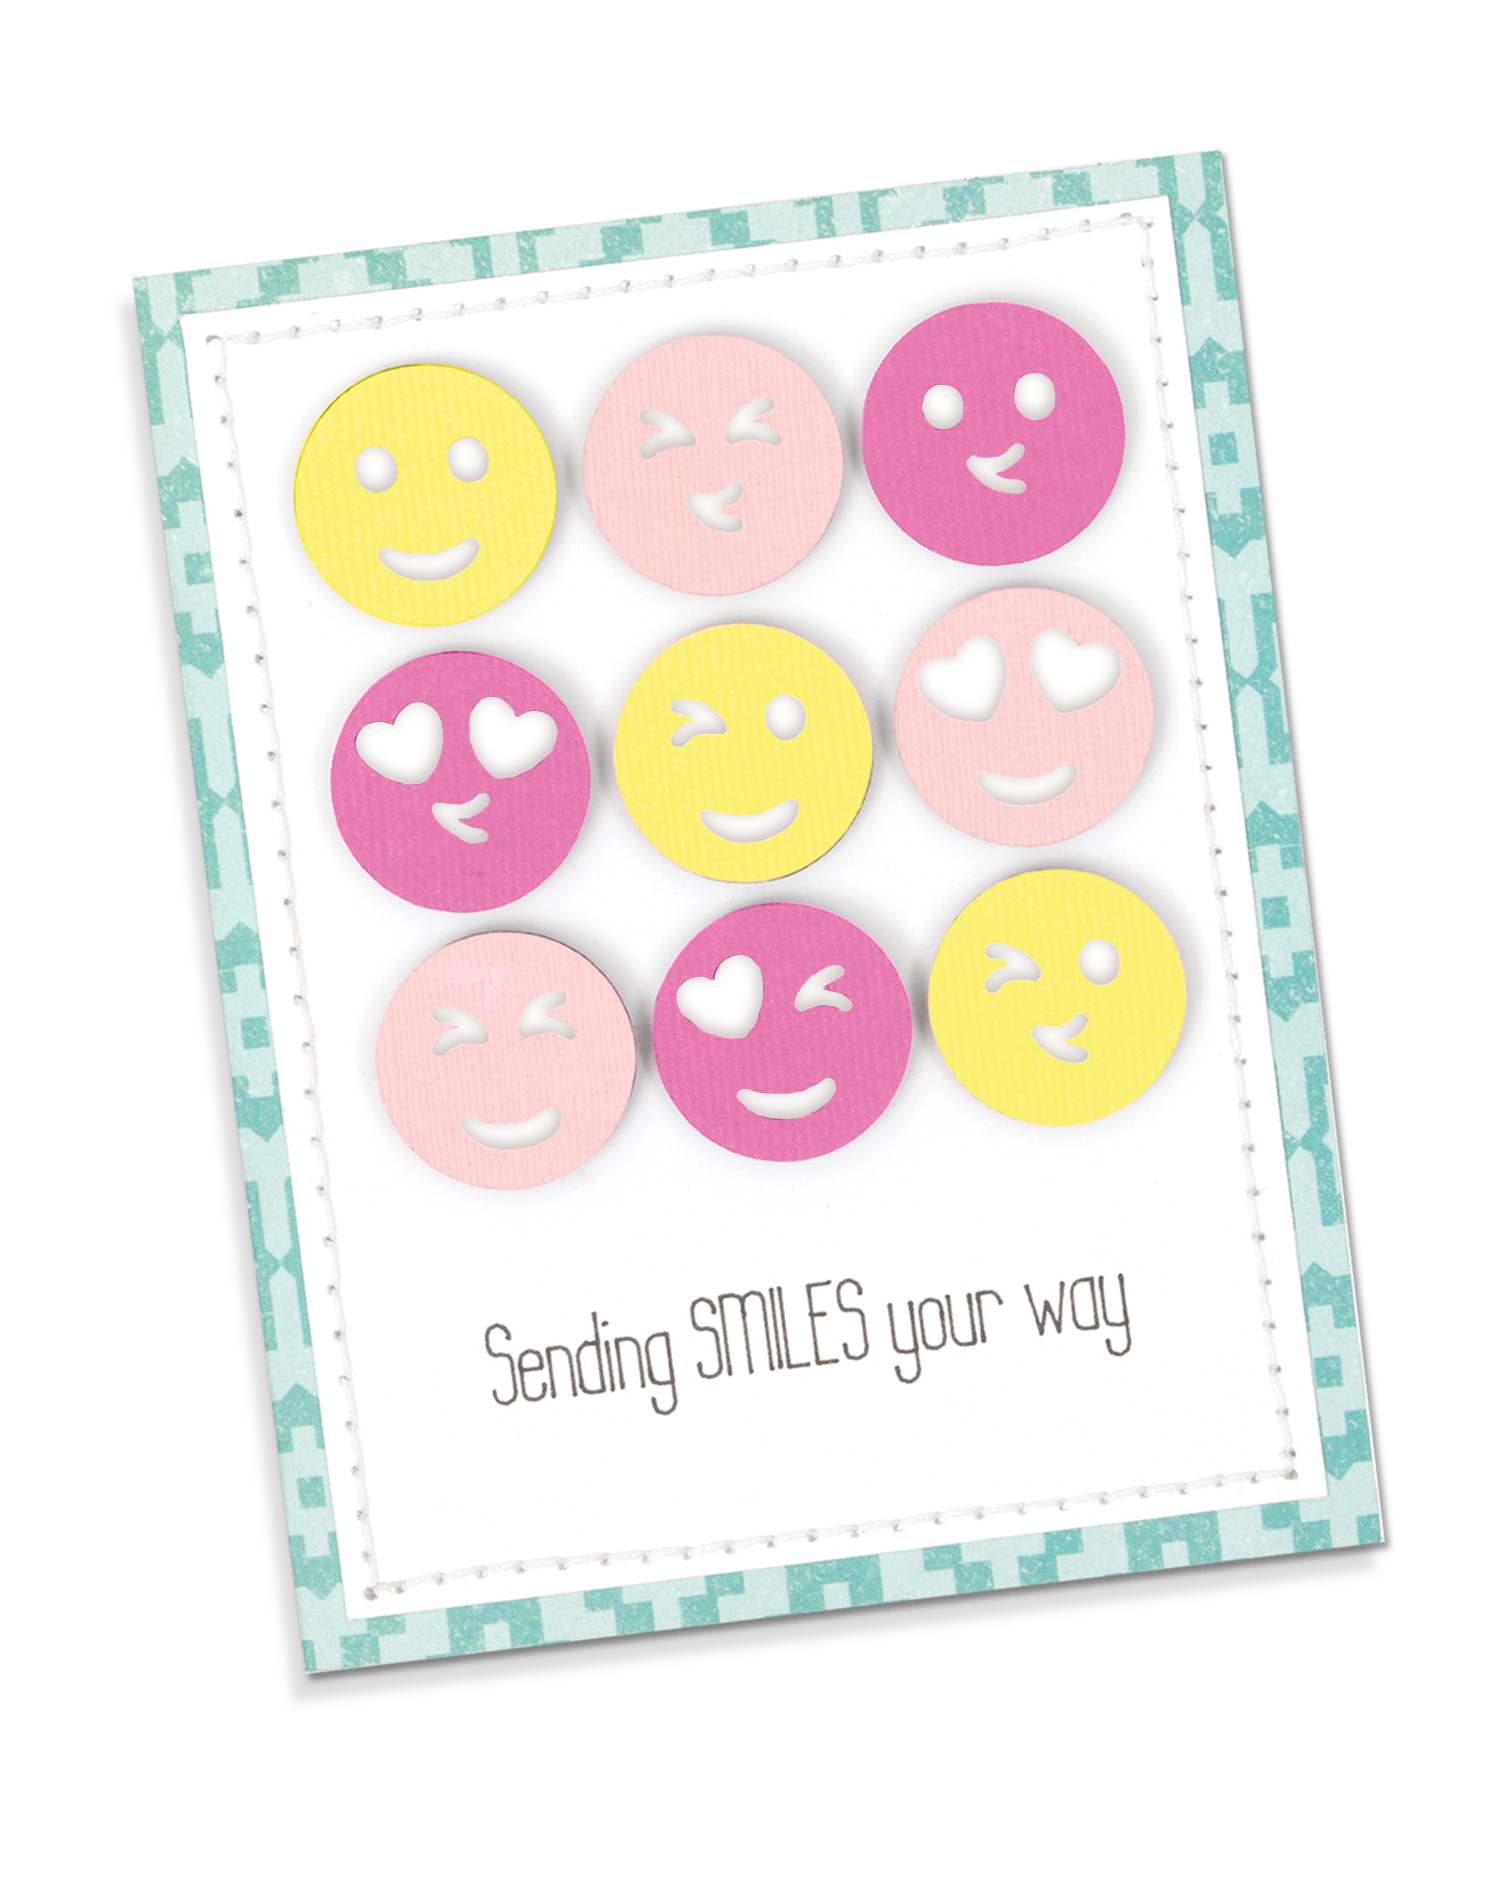 Put a smile on your card recipient's face with custom emojis made with the Emoji Punch Board by We R Memory Keepers